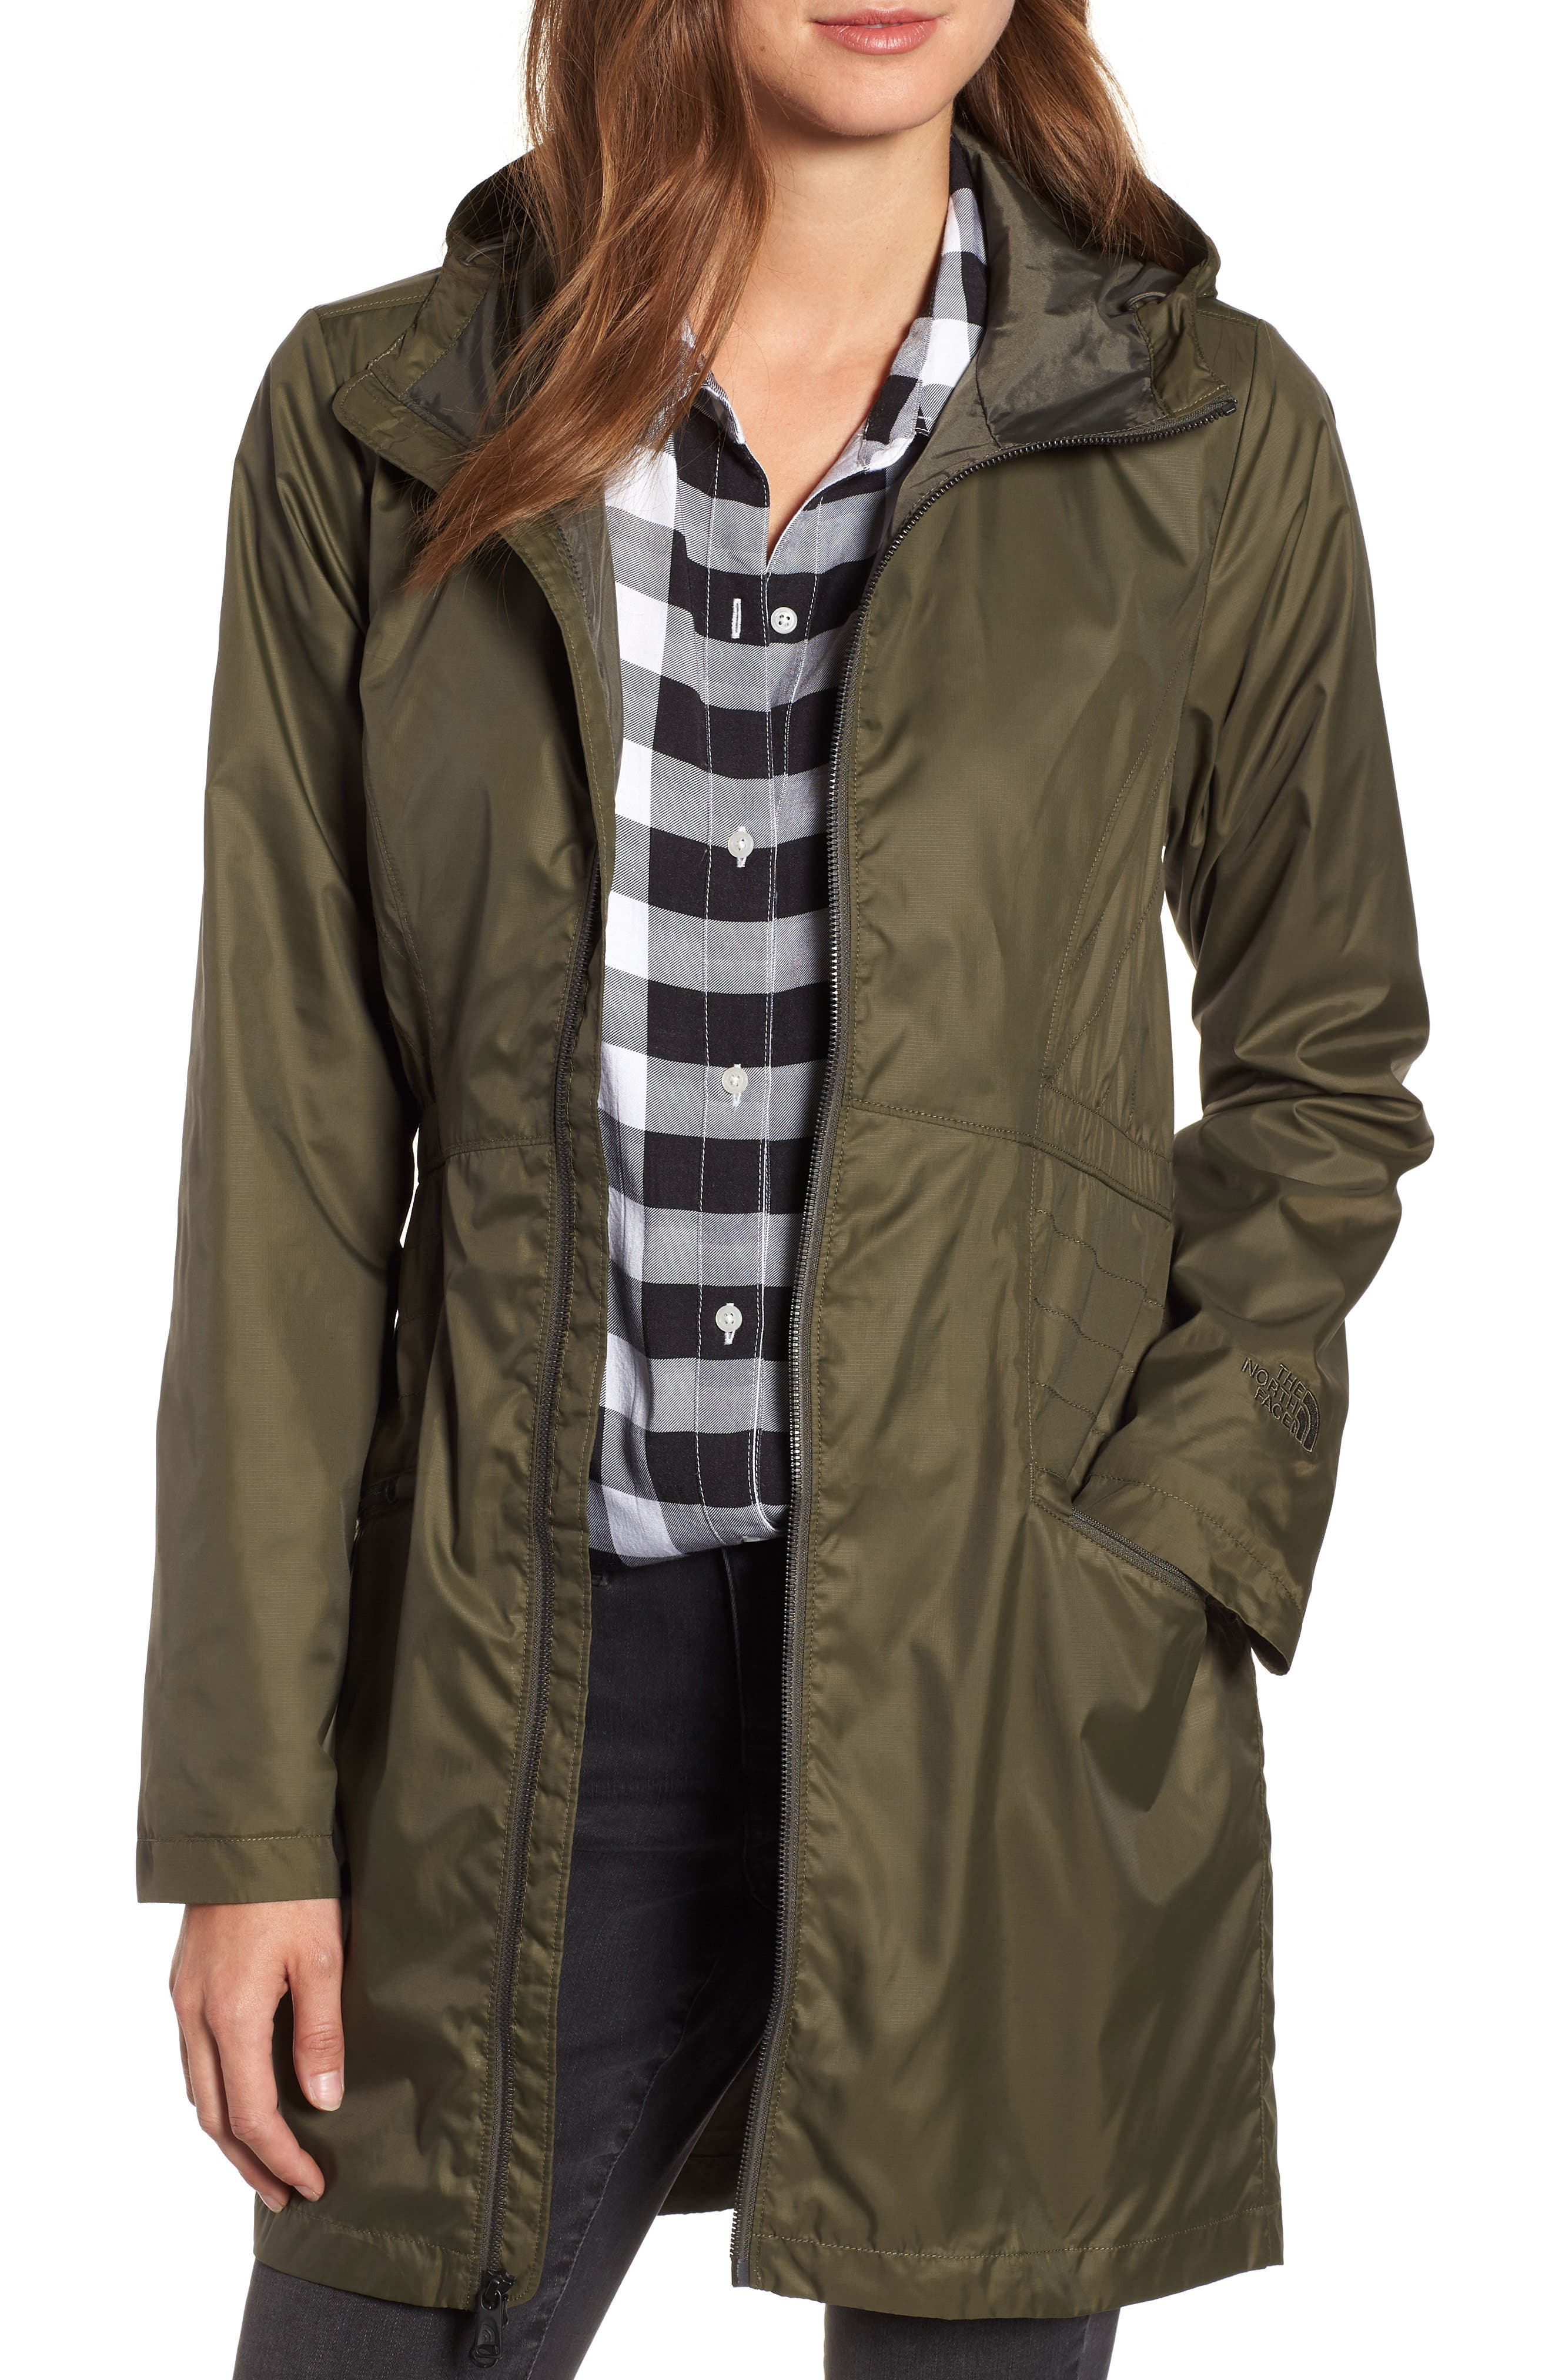 THE NORTH FACE Rissy 2 Wind Resistant Jacket, Main, color, 302